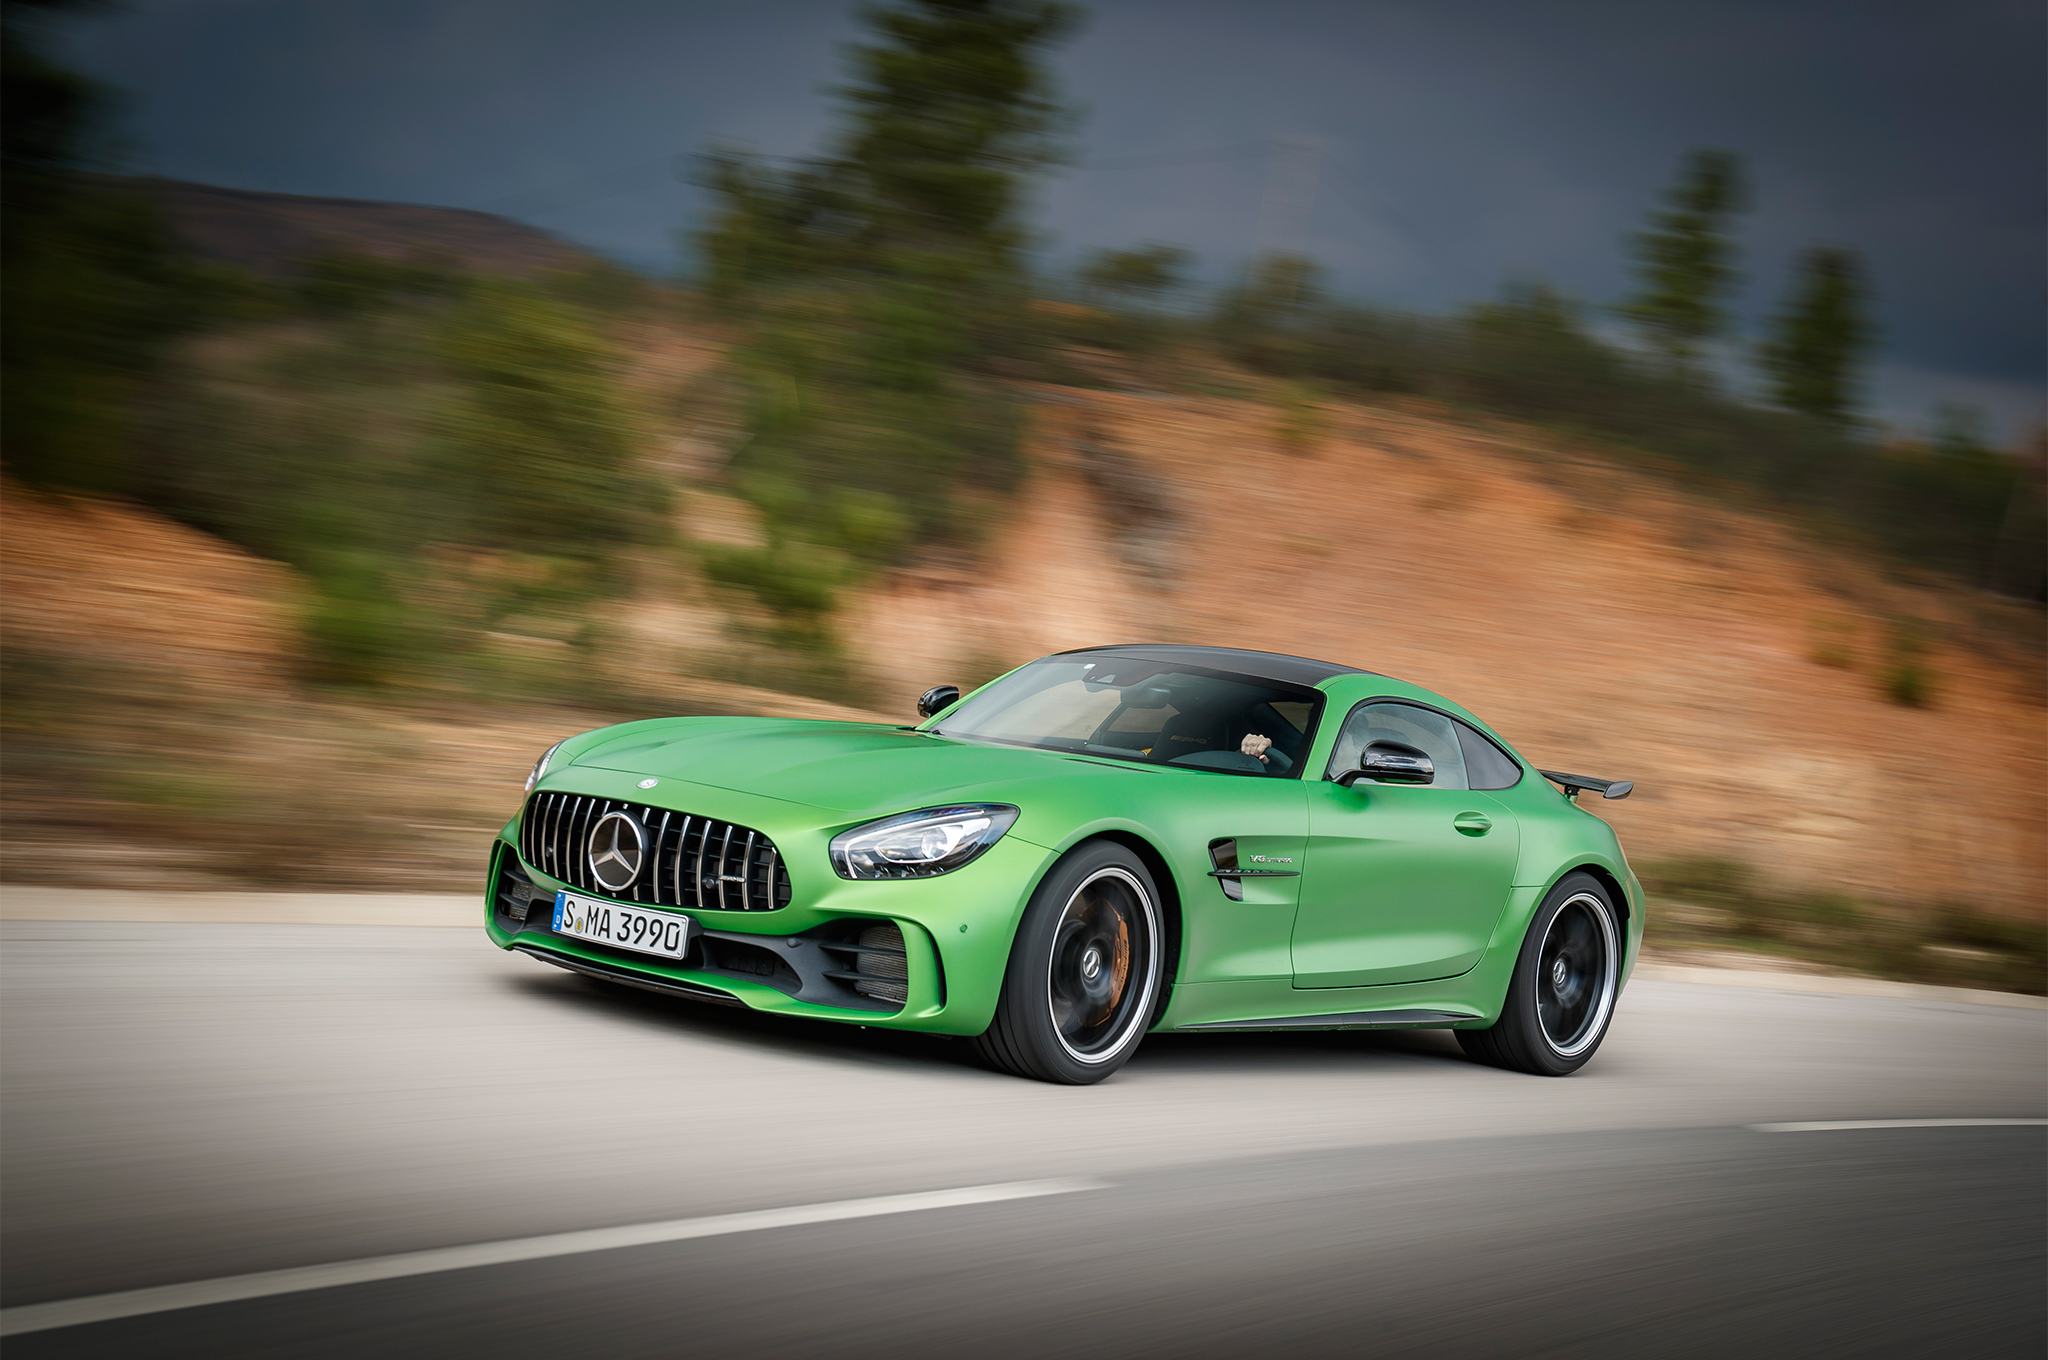 2018 mercedes amg gt coupe and roadster pricing announced automobile magazine. Black Bedroom Furniture Sets. Home Design Ideas